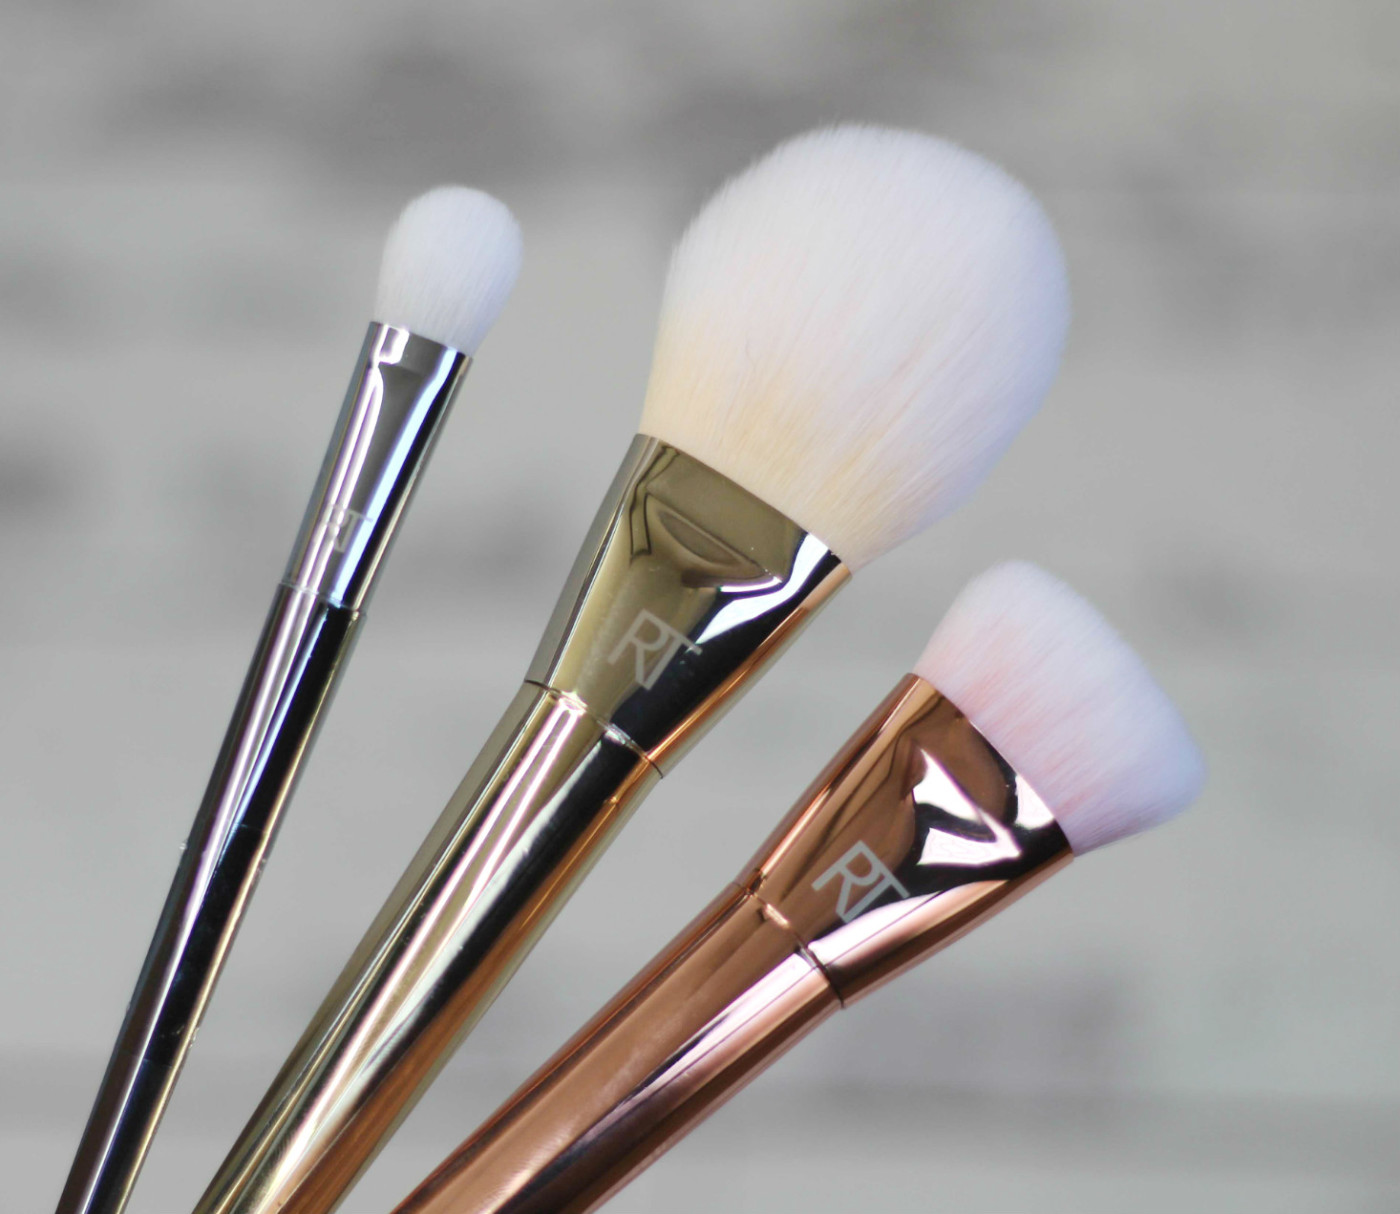 Real Techniques Bold Metal Collection Brushes, Real Techniques, real techniques brushes, 301 flat contour brush review, 100 Arched Powder Review, 200 Oval Shadow, through chelsea's eyes,